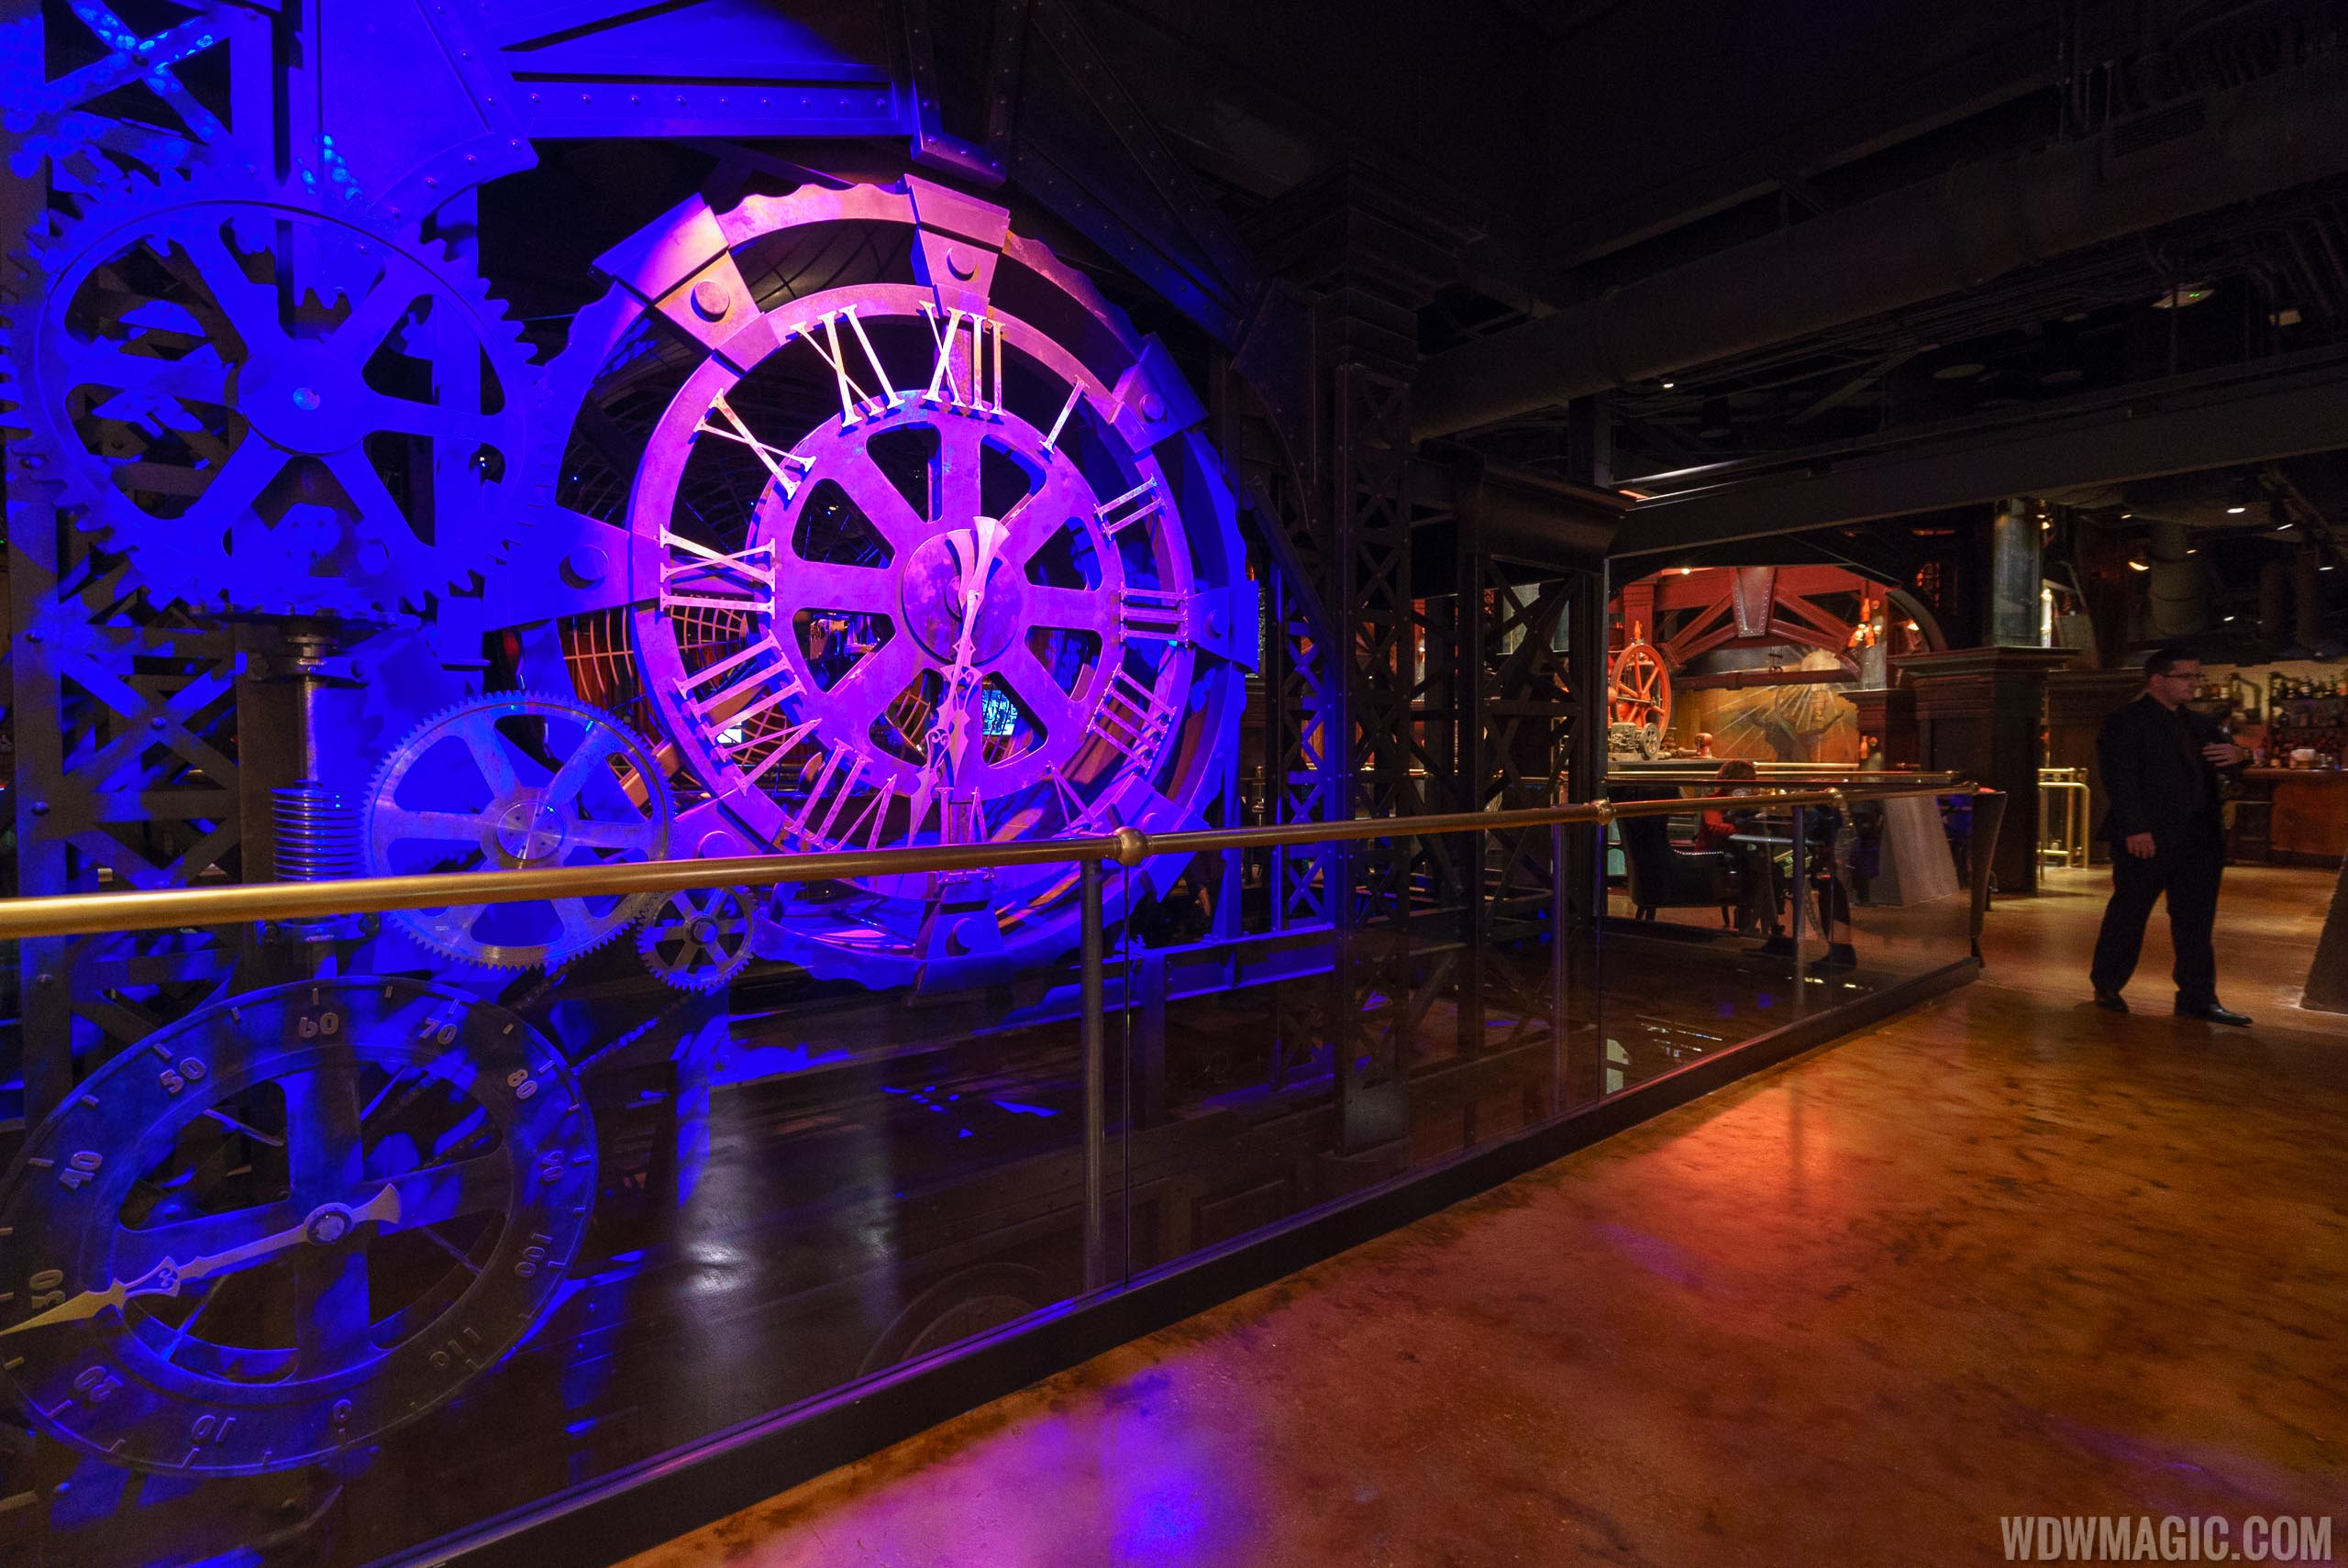 The Edison's mechanical clock